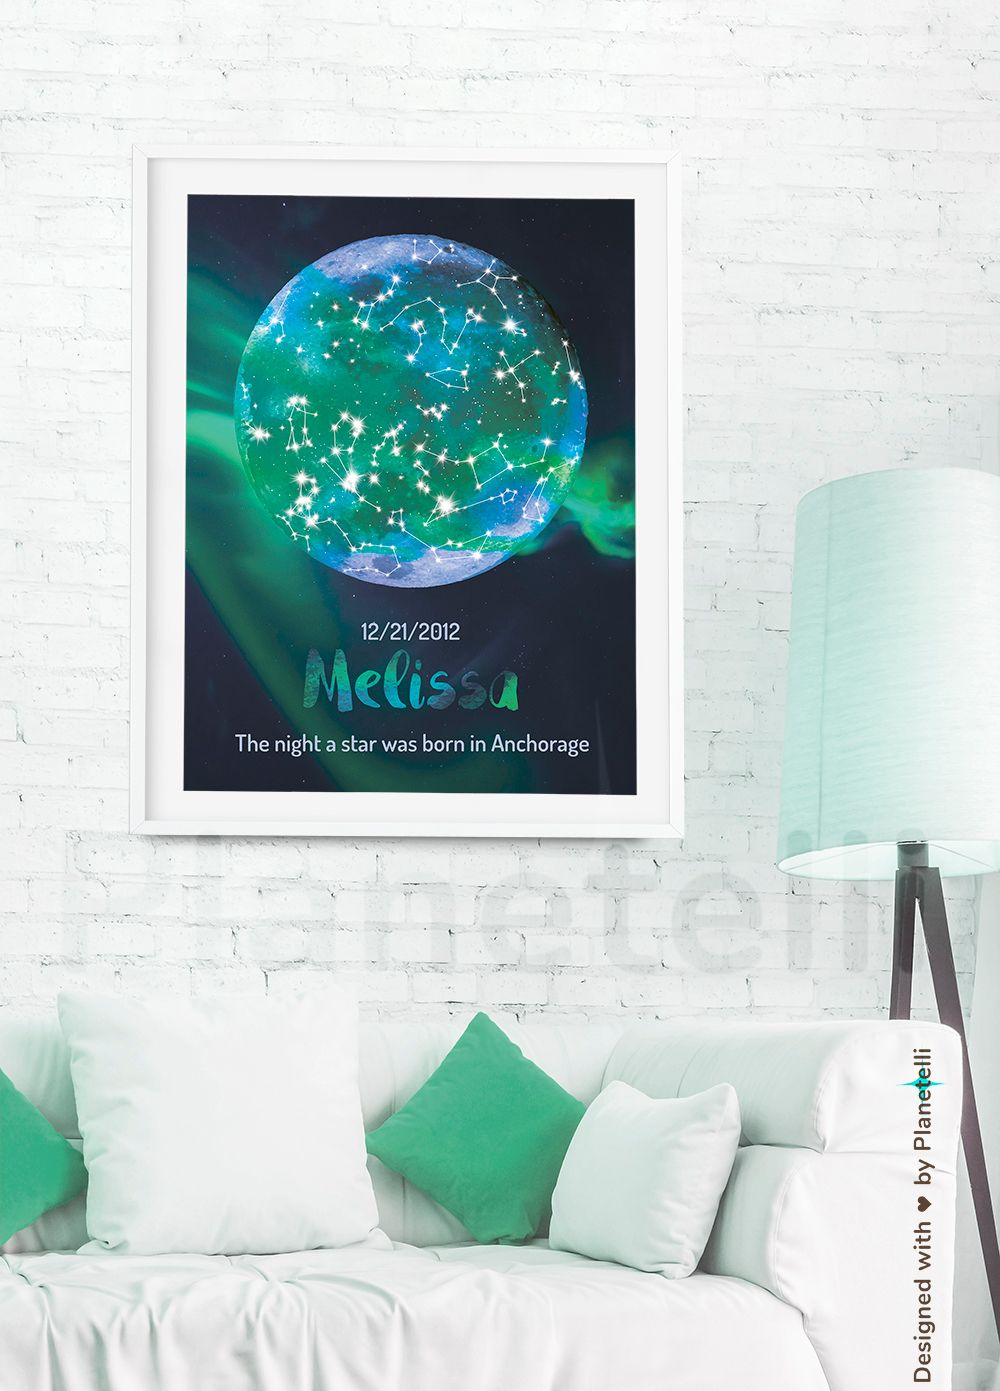 Isnt It A Brilliant Idea To Give This Personalized Sky Chart For Your Loved One Its Based On Date And Place Of The Moment Two First Met Dated